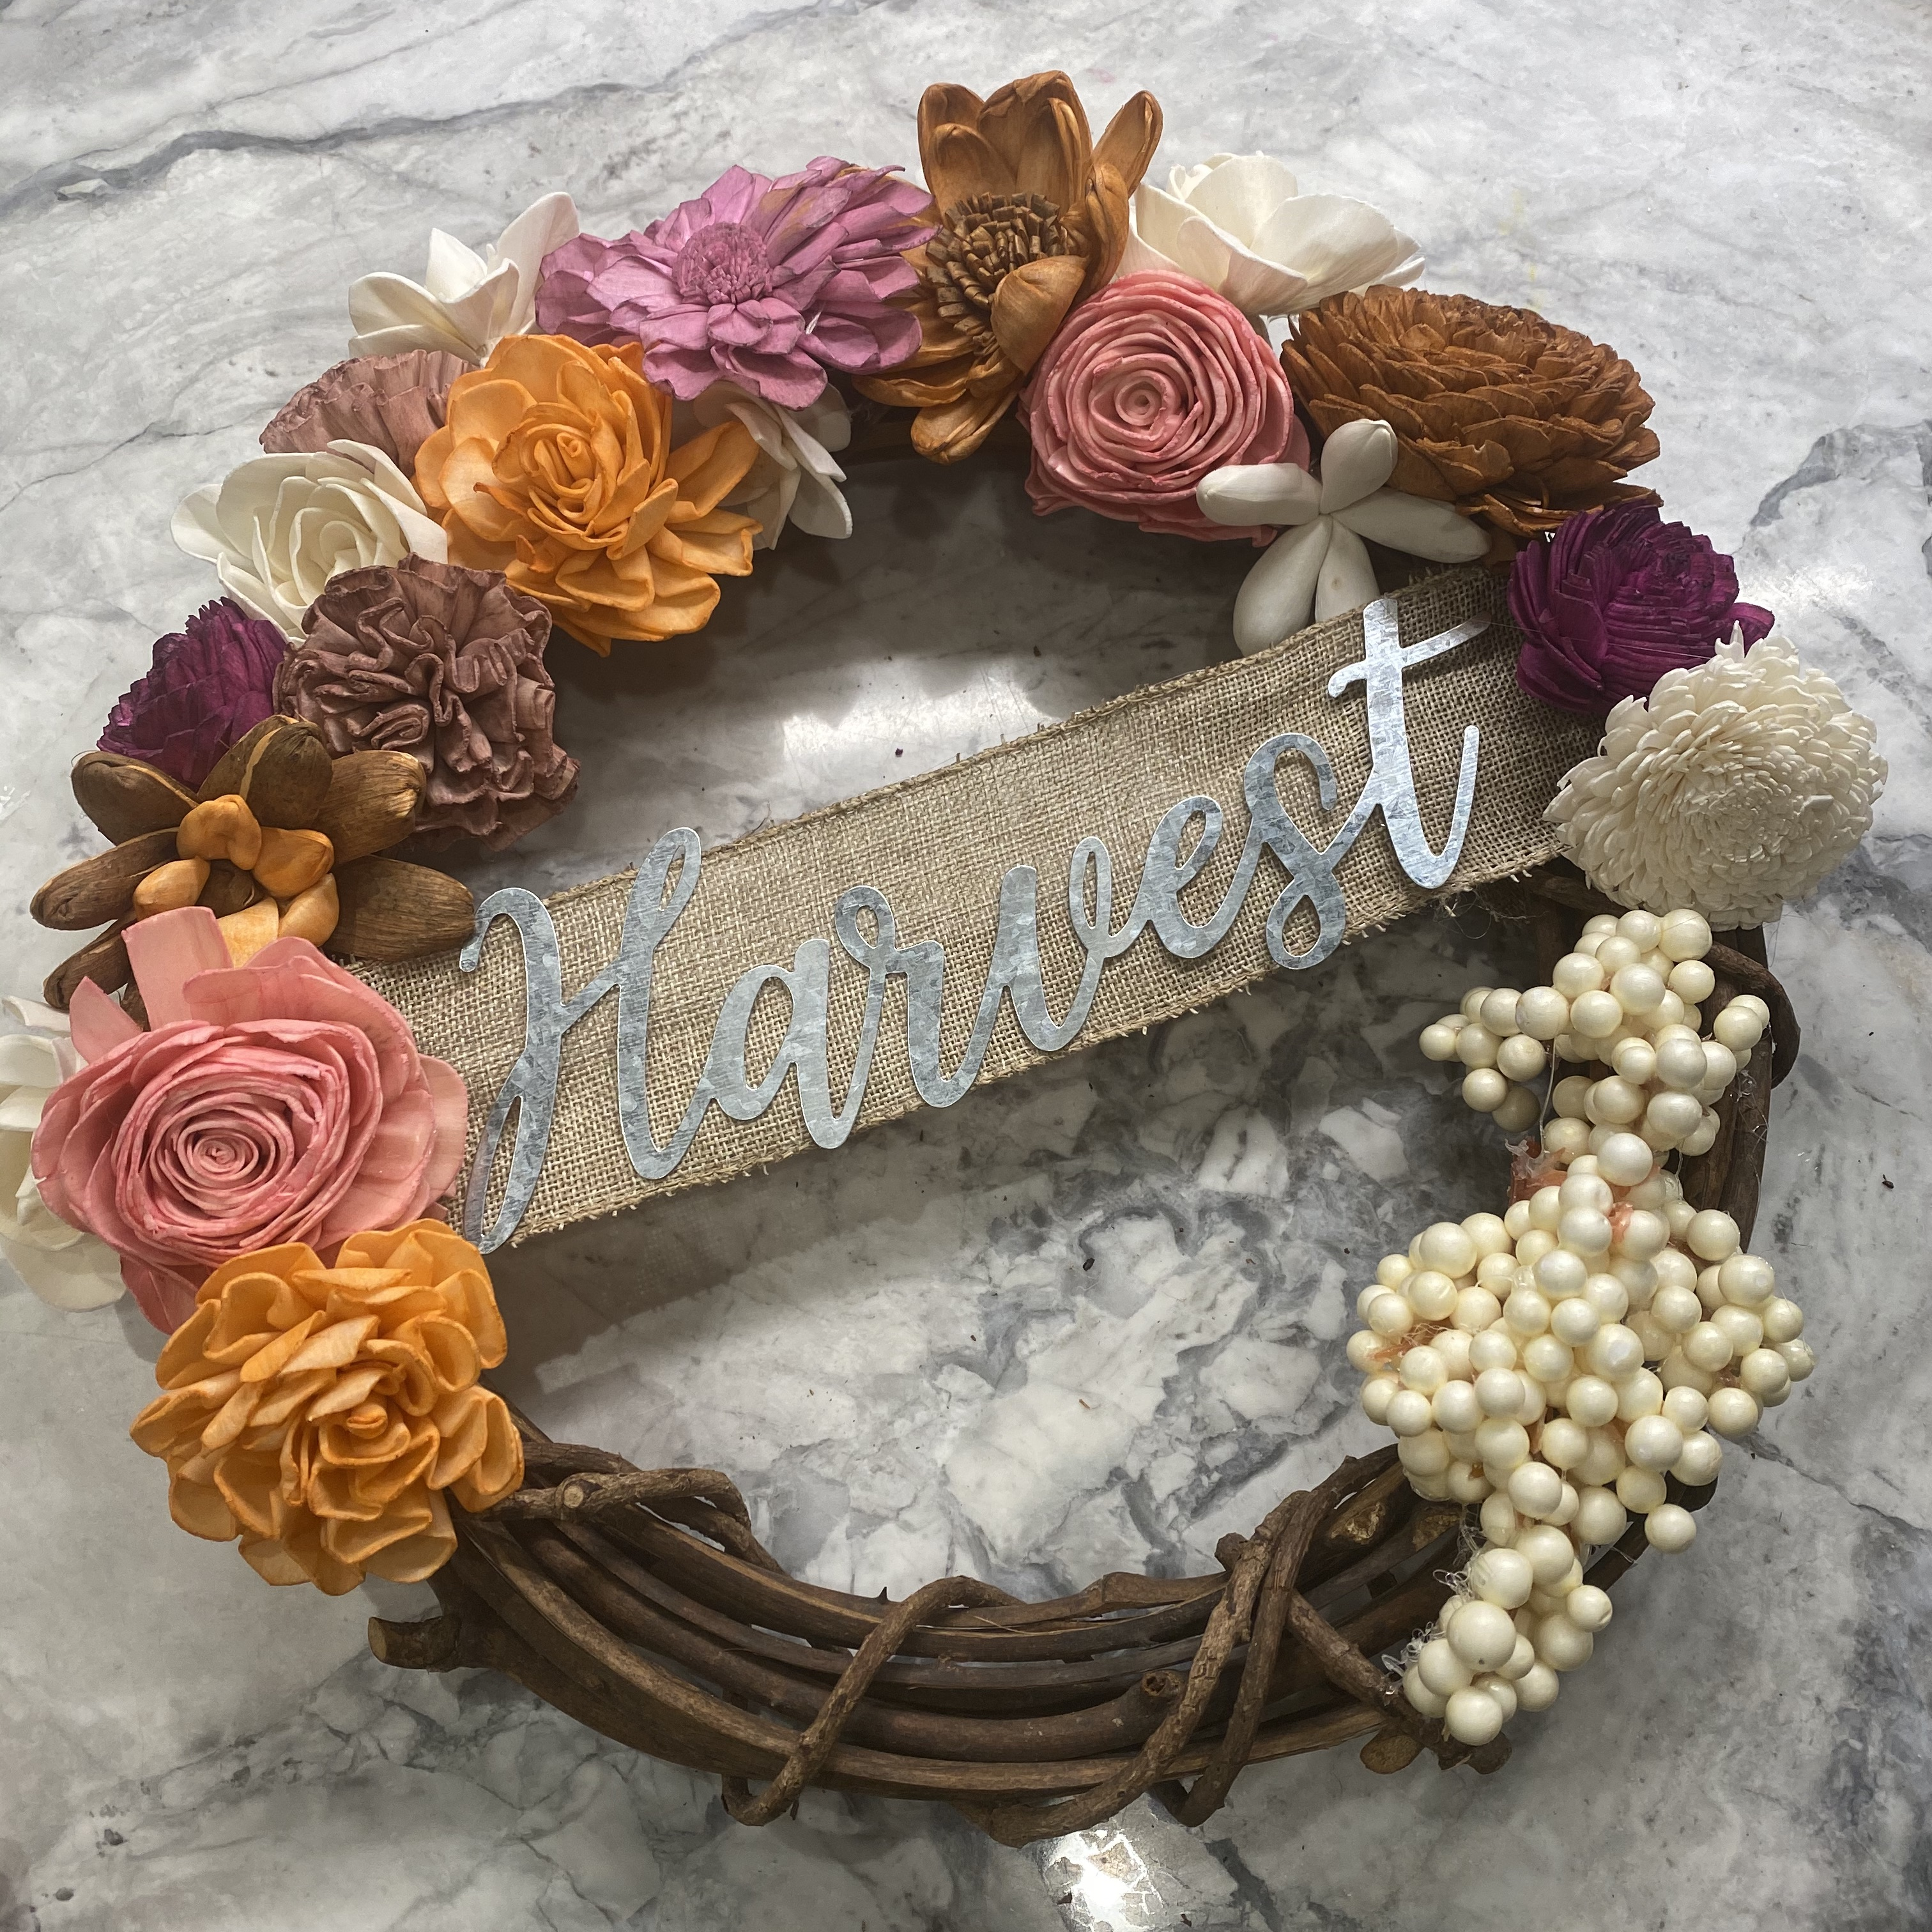 A Harvest Wood Flower Wreath Paint Your Flowers Supplies Shipped to Door TeamTavarone experience project by Yaymaker